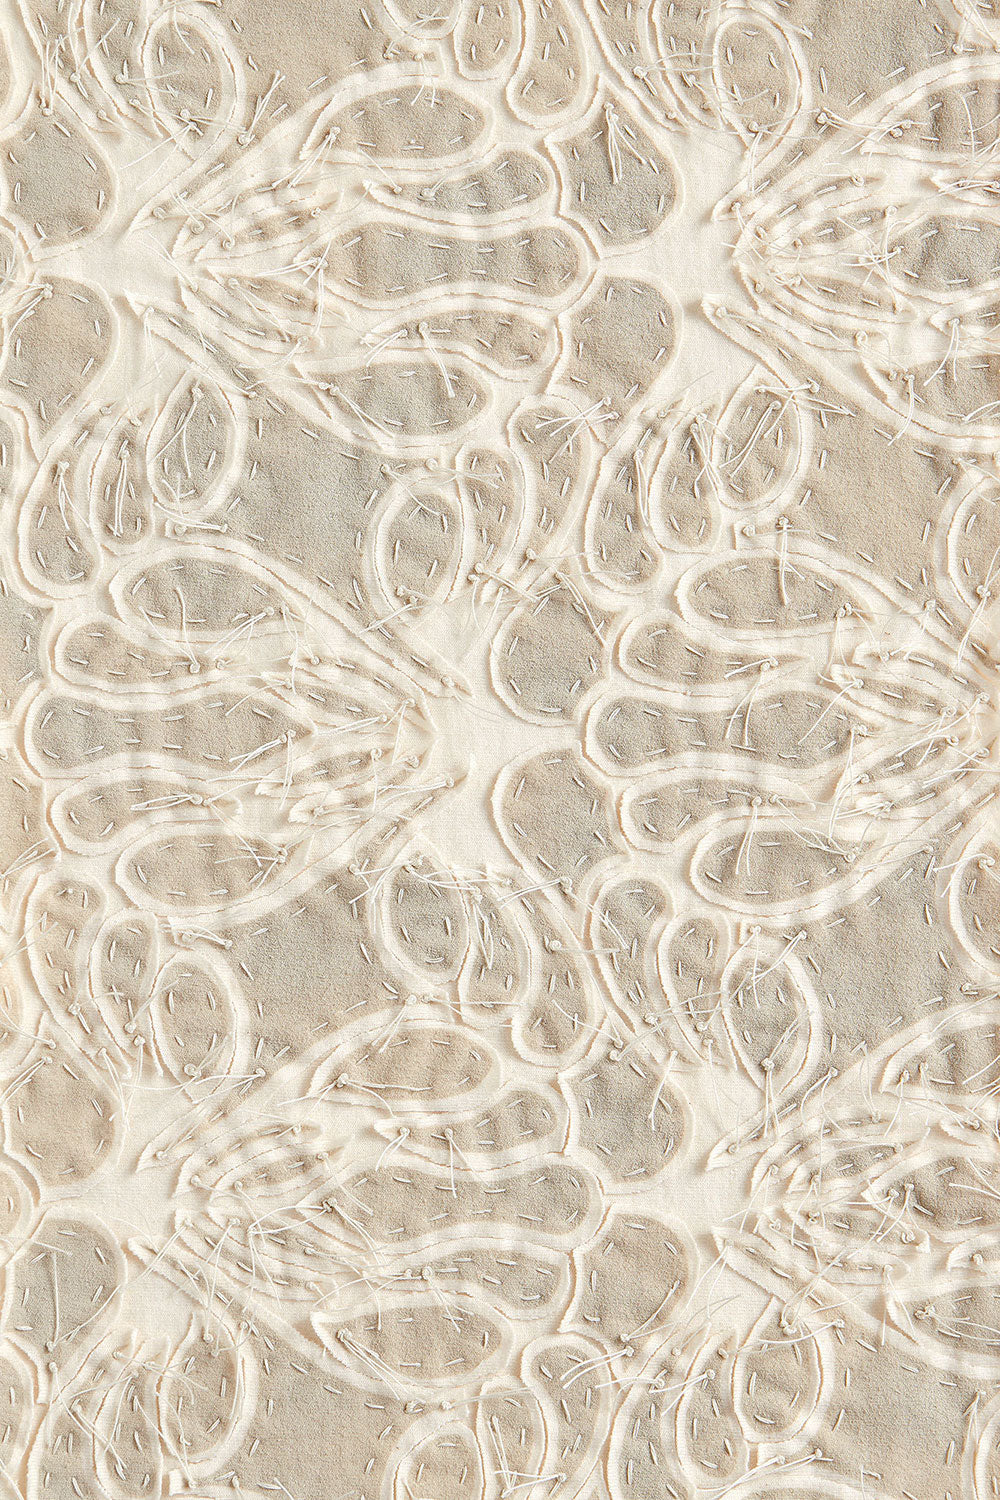 Alabama Chanin Organic Cotton Hand Embroidered Fabric Swatch in Lace